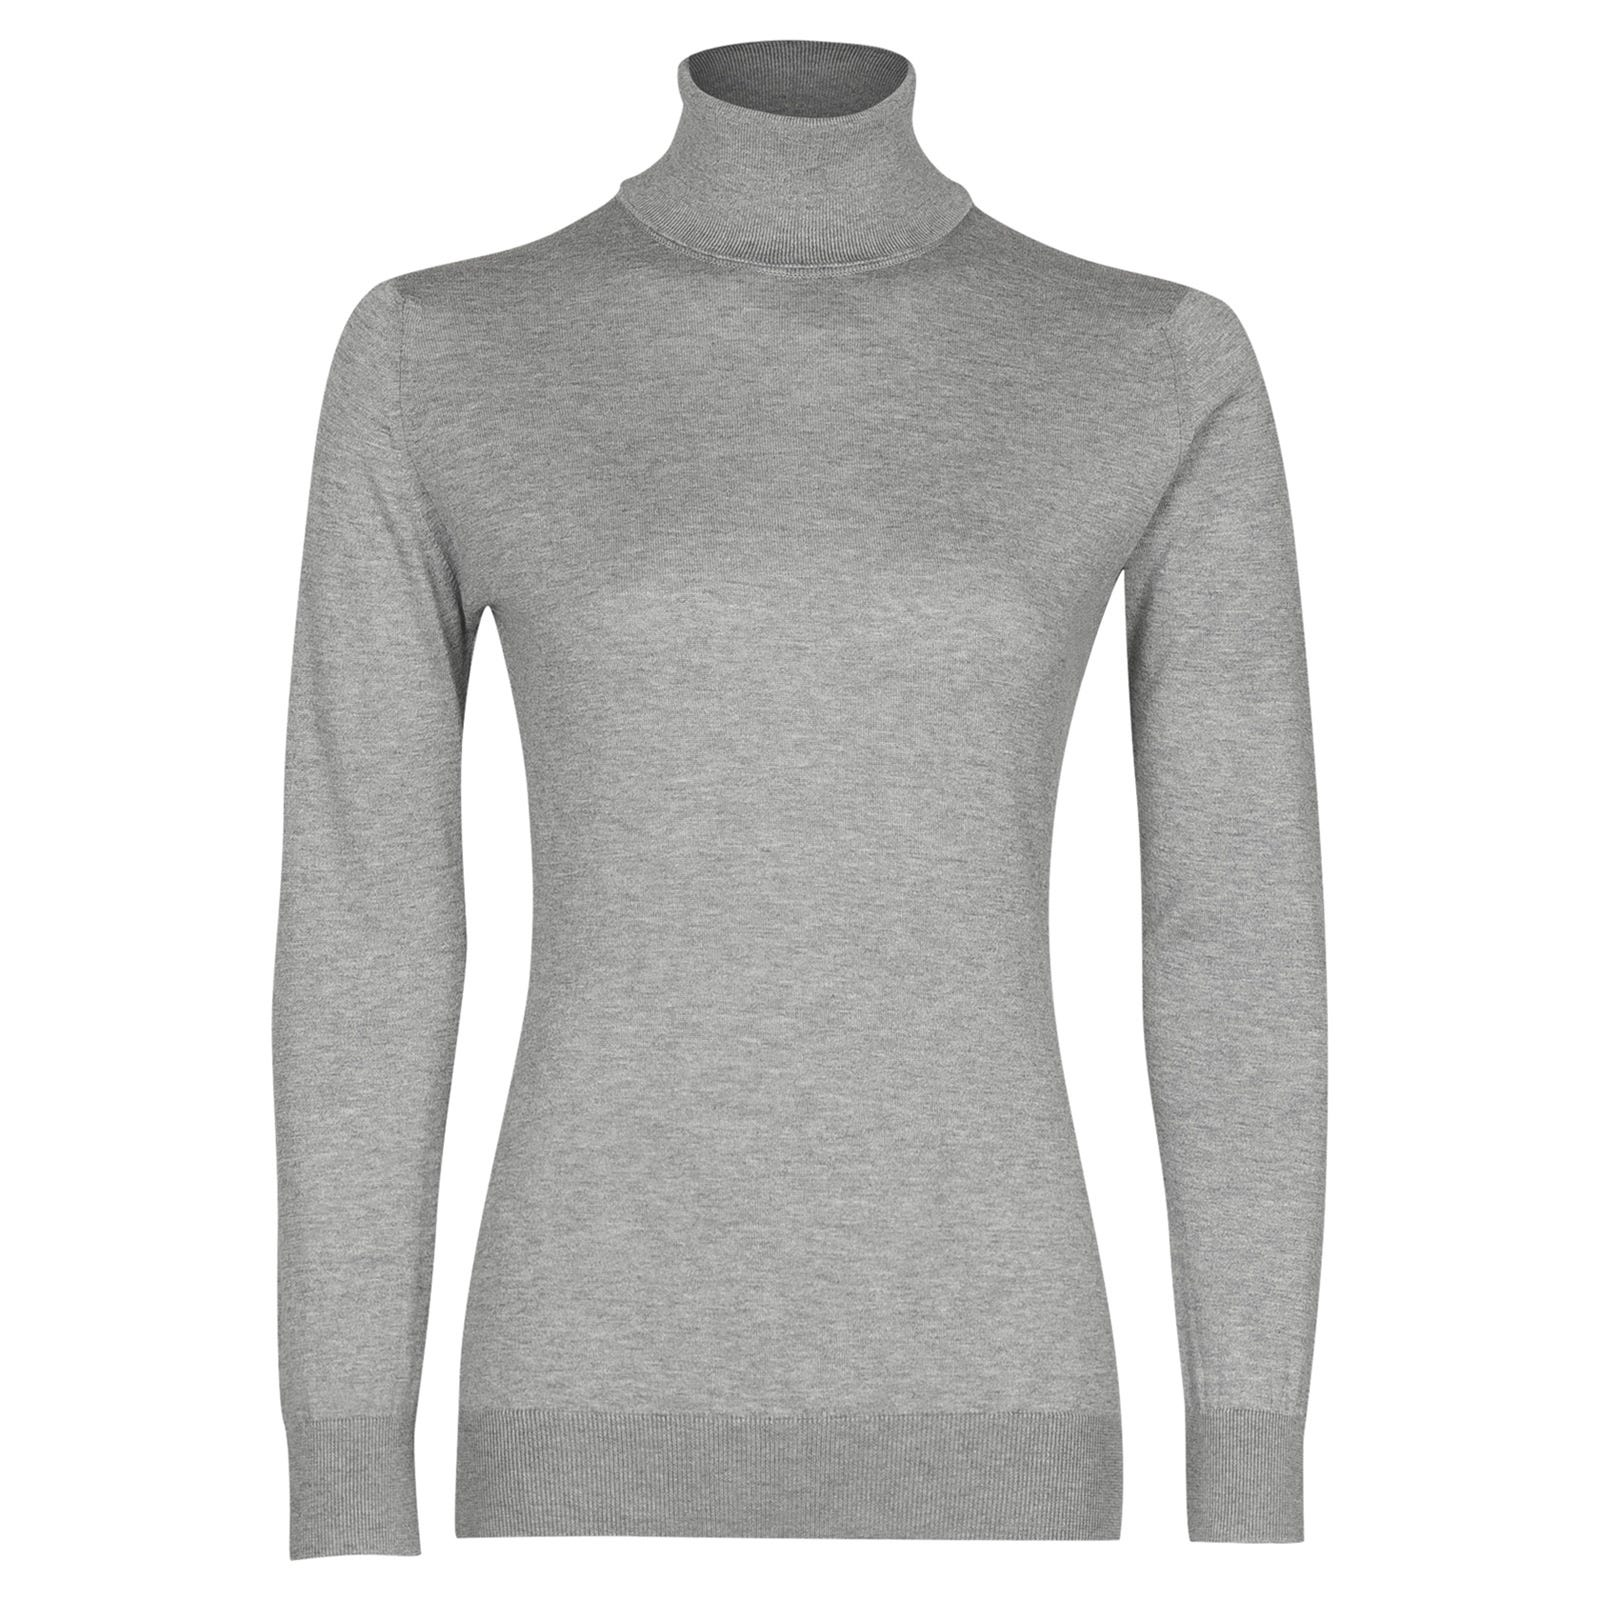 John Smedley pimlico Sea Island Cotton Sweater in Silver-M